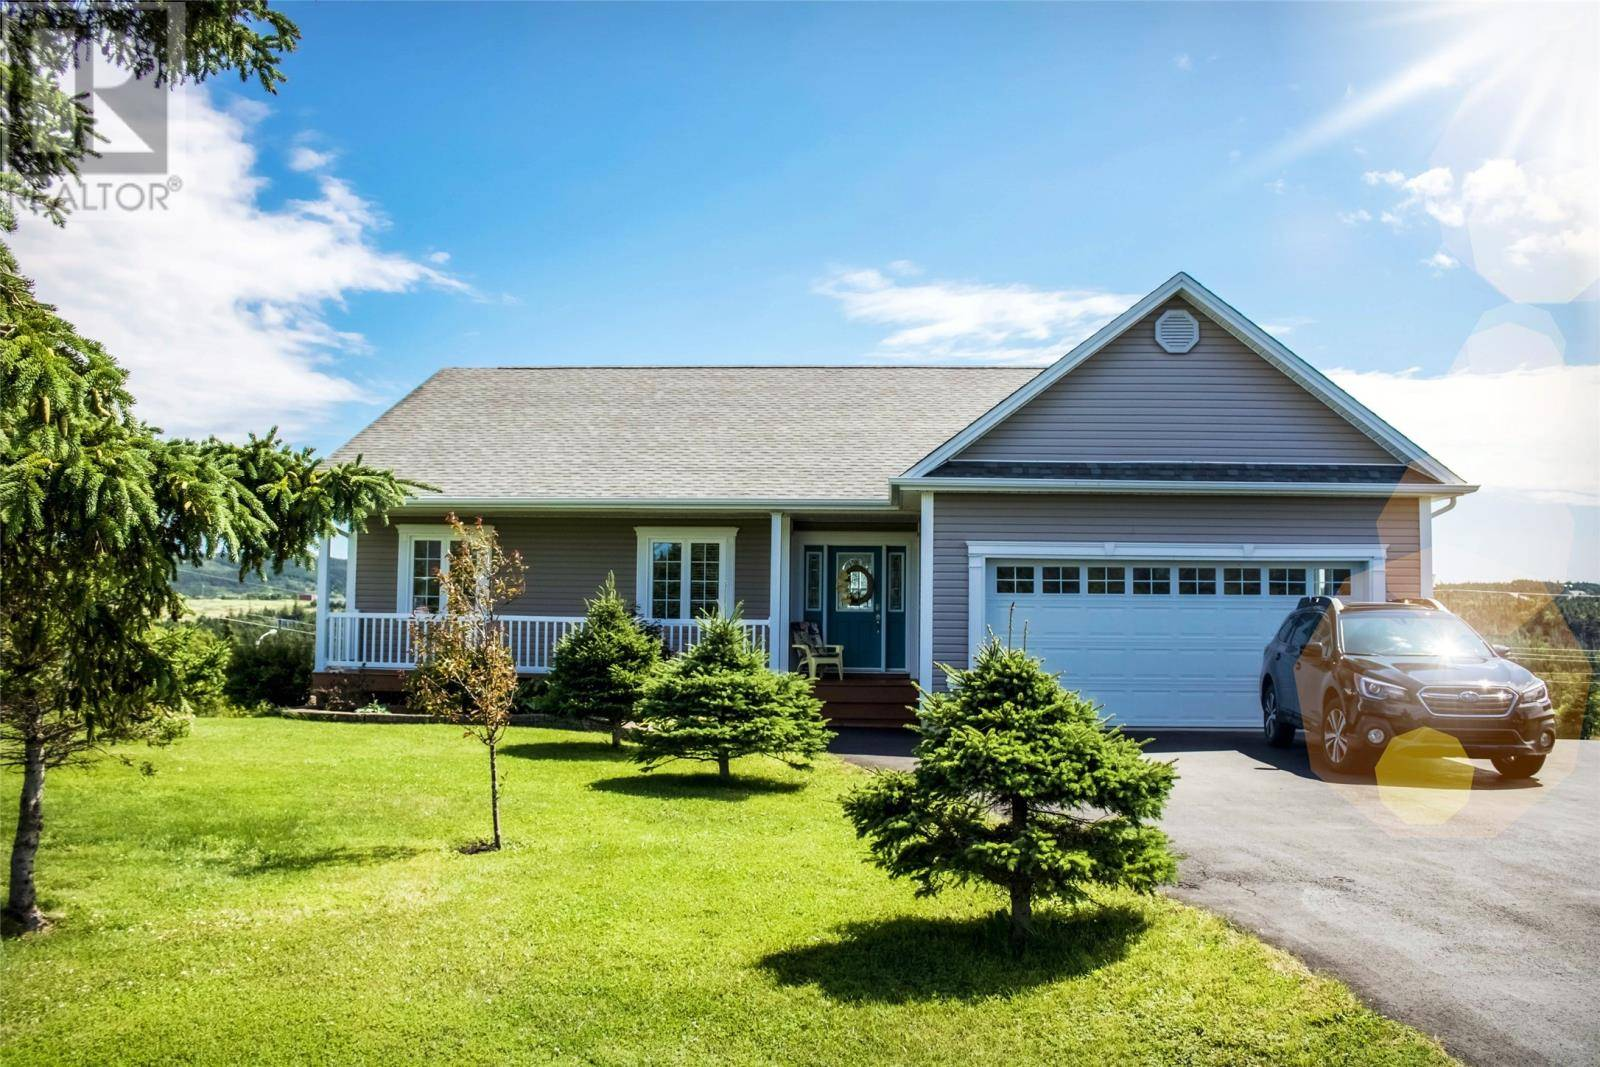 House for sale at 16 Nageira Cres Logy Bay Middle Cove Outer Cove Newfoundland - MLS: 1209551